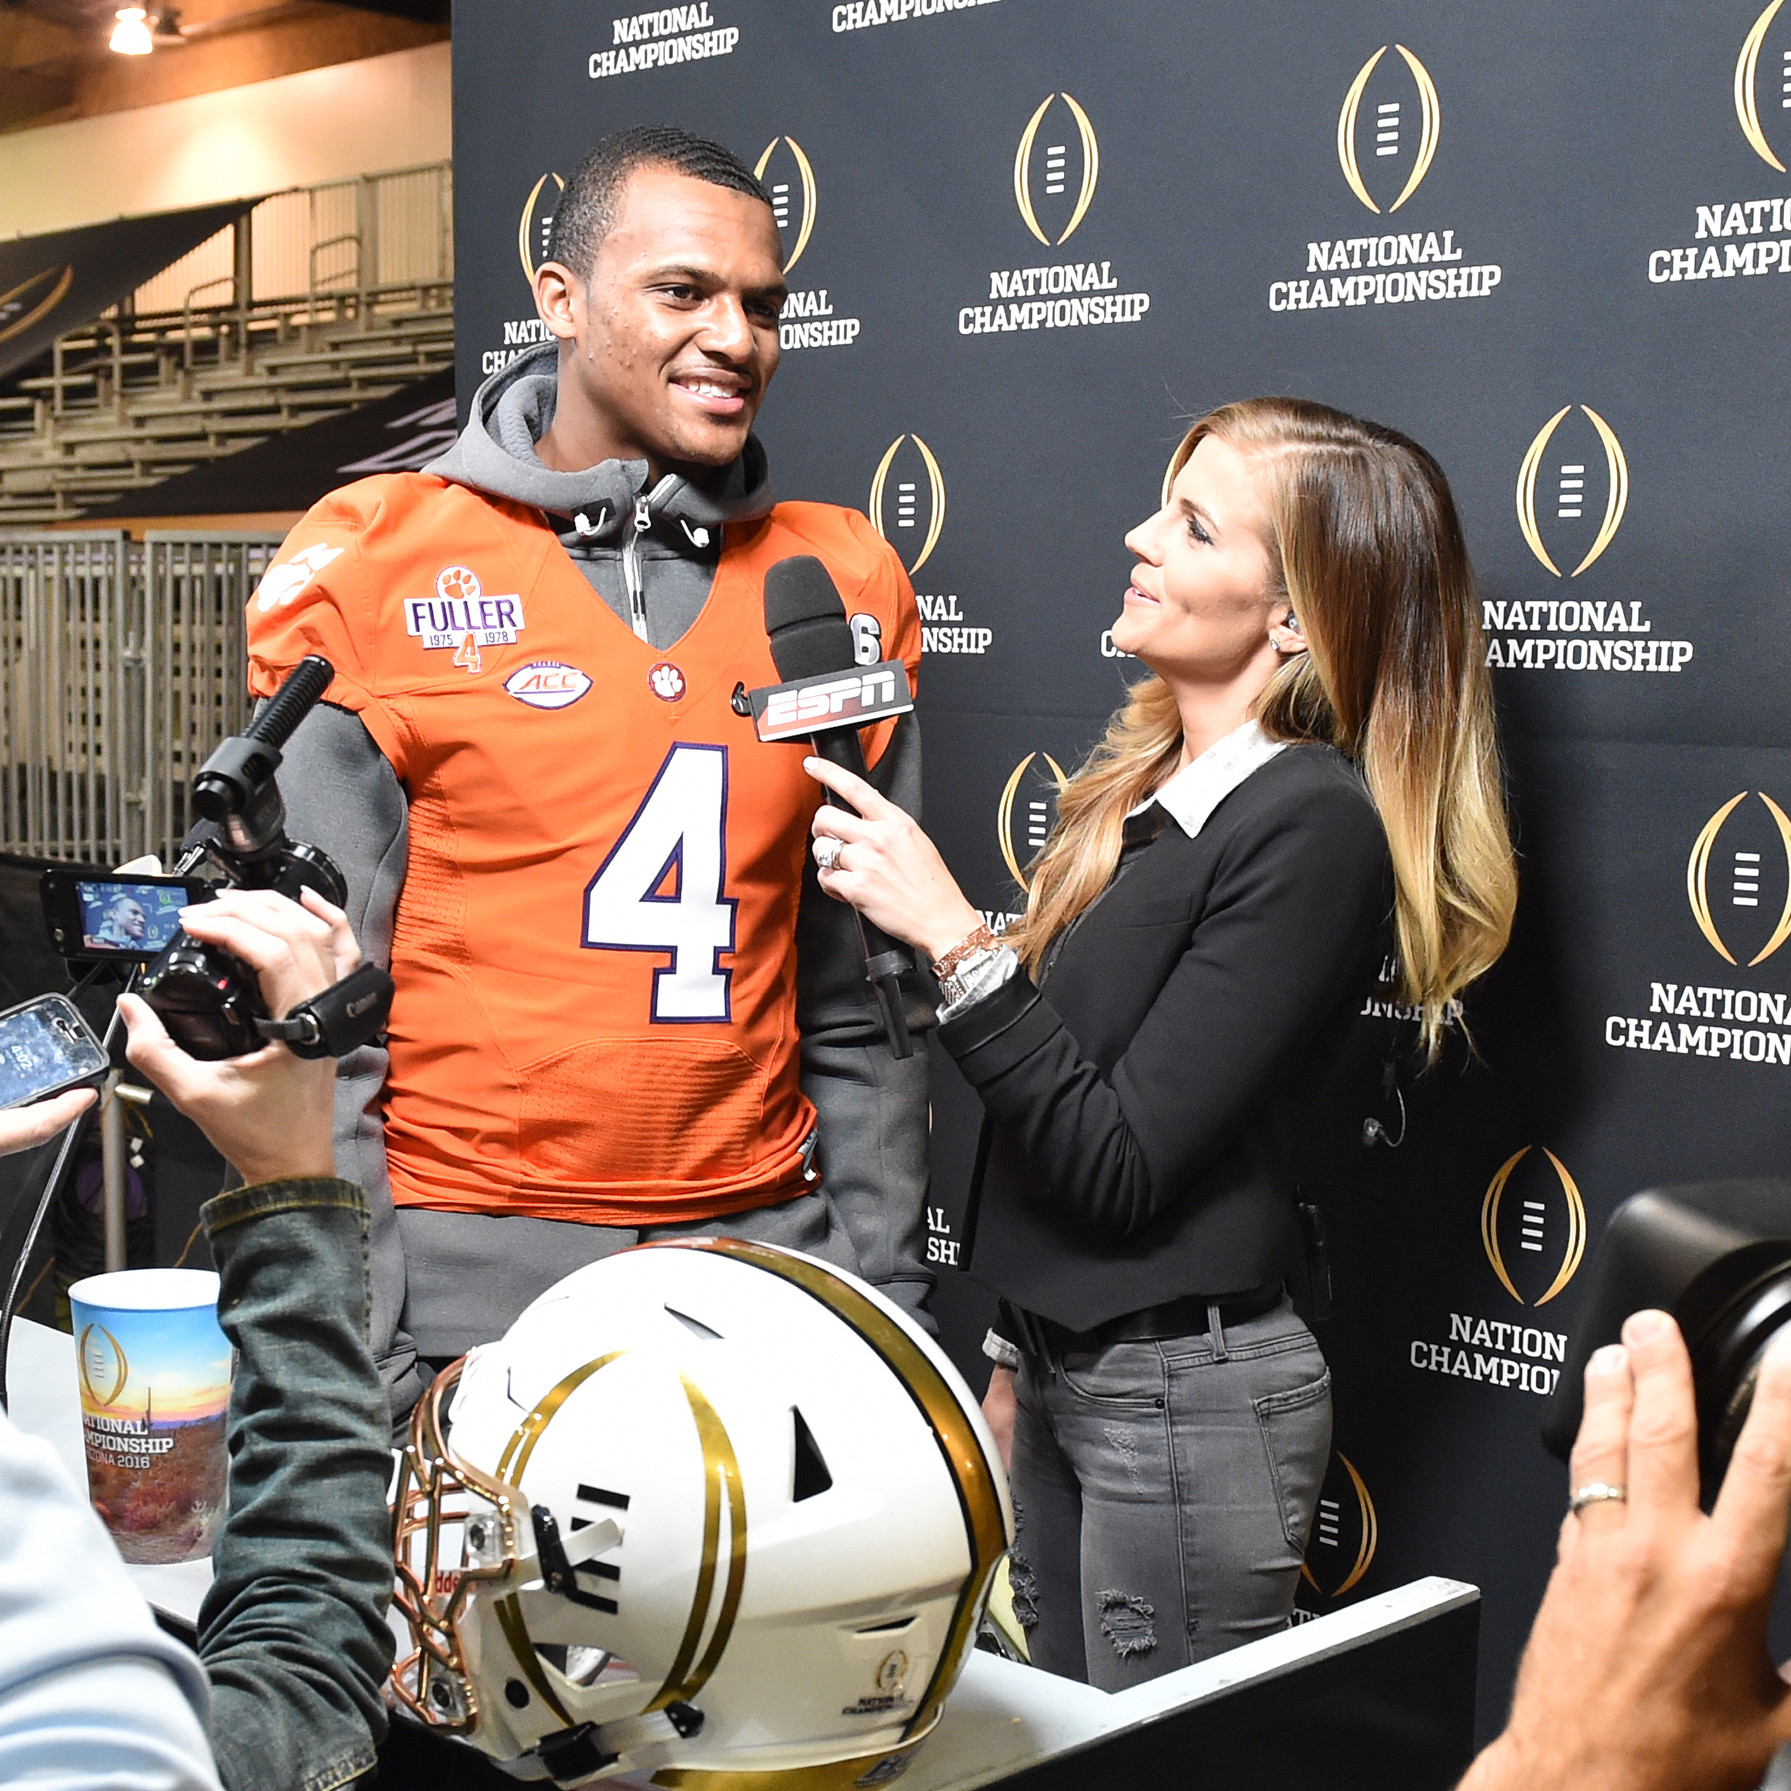 Day 2 (Saturday) CFP Title Blog